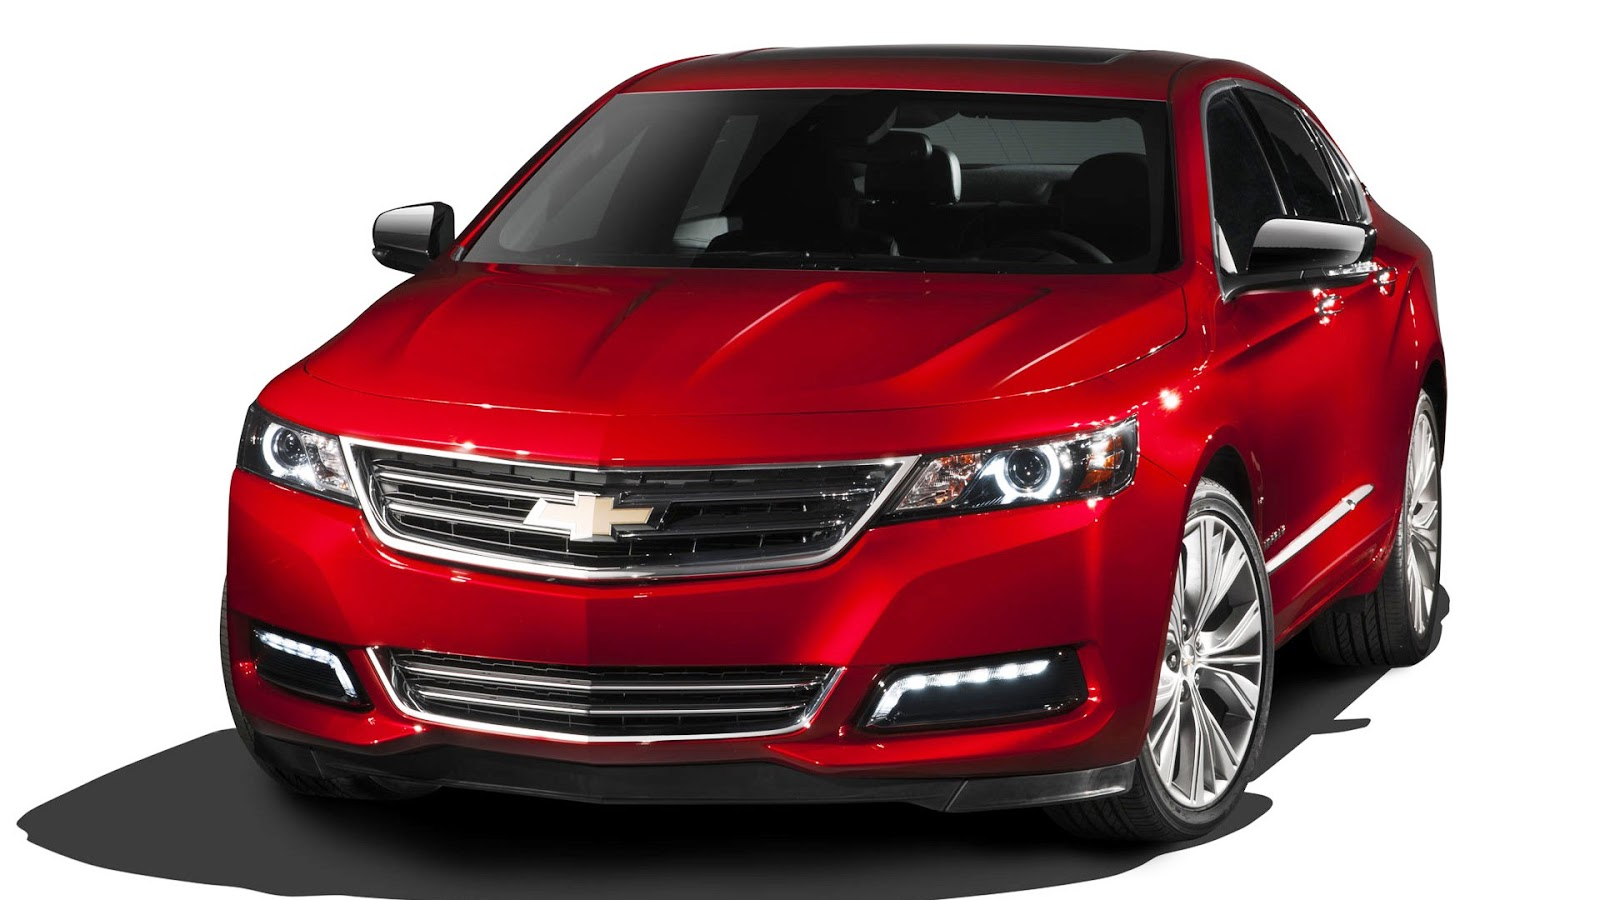 Full Hd Exotic Car Wallpapers 2014 Chevrolet Impala Ltz